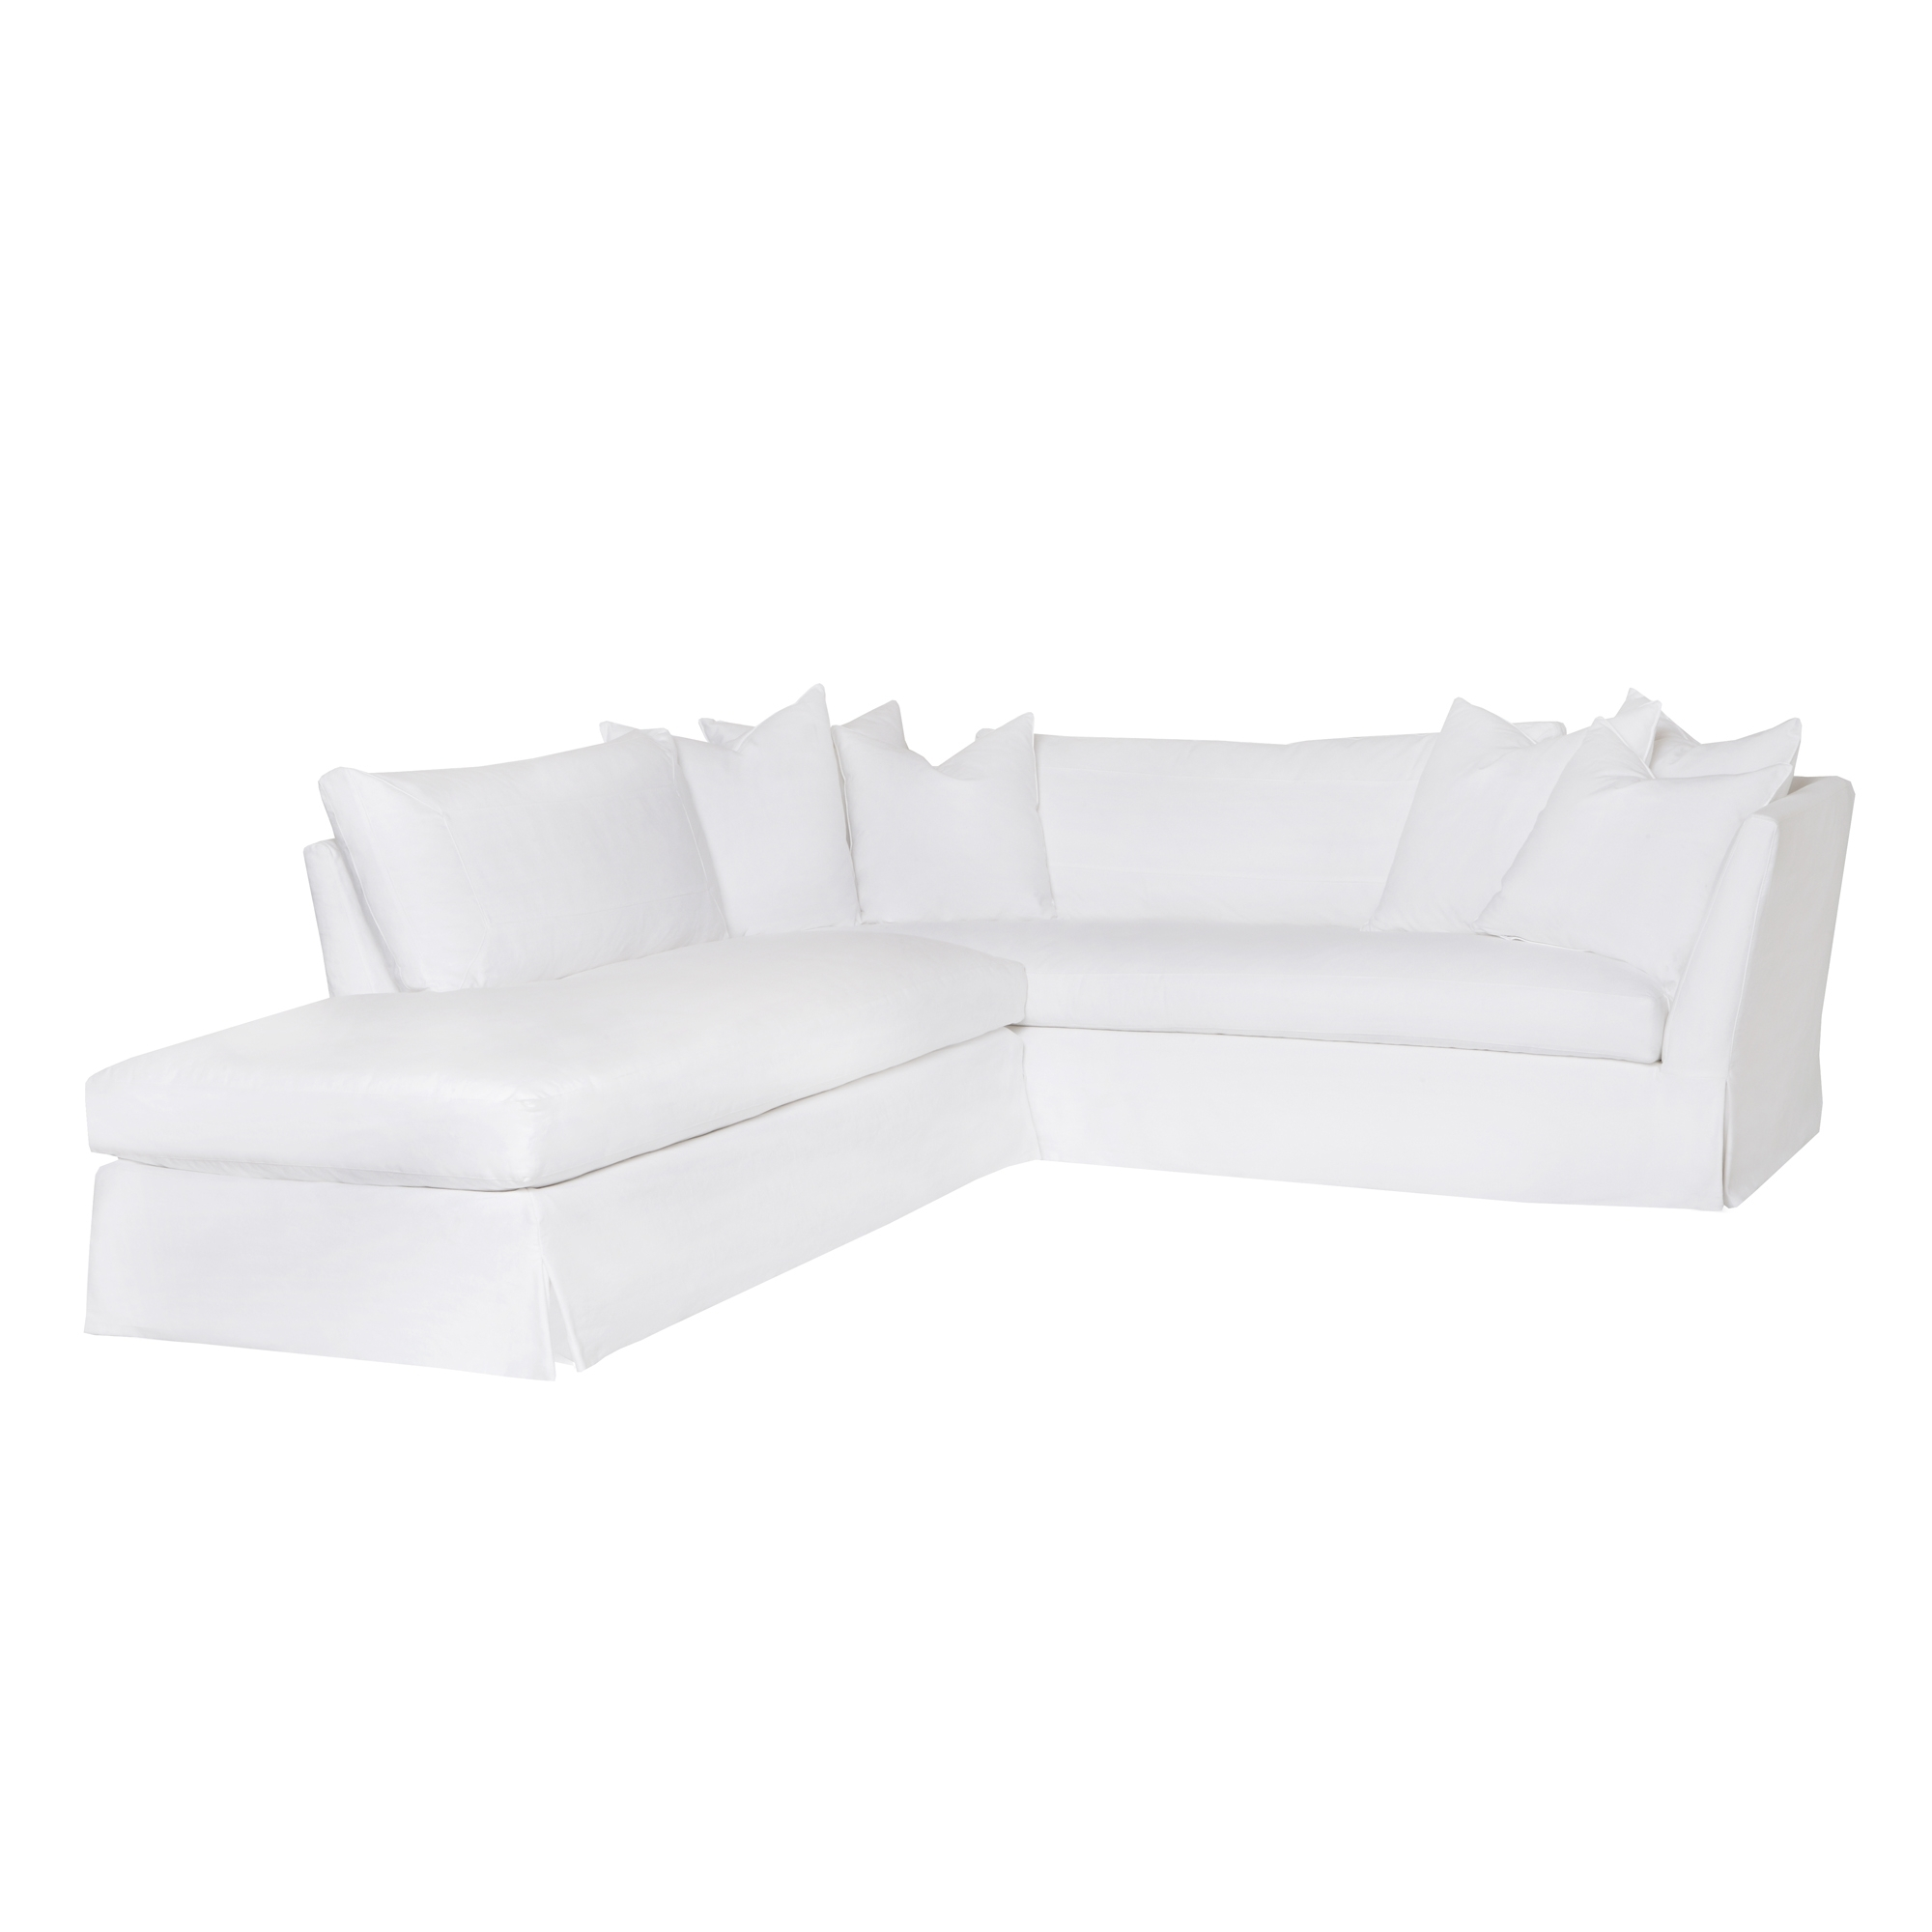 Seda Sectional | Villa Vici Contemporary Furniture Store And Pertaining To New Orleans Sectional Sofas (View 6 of 10)